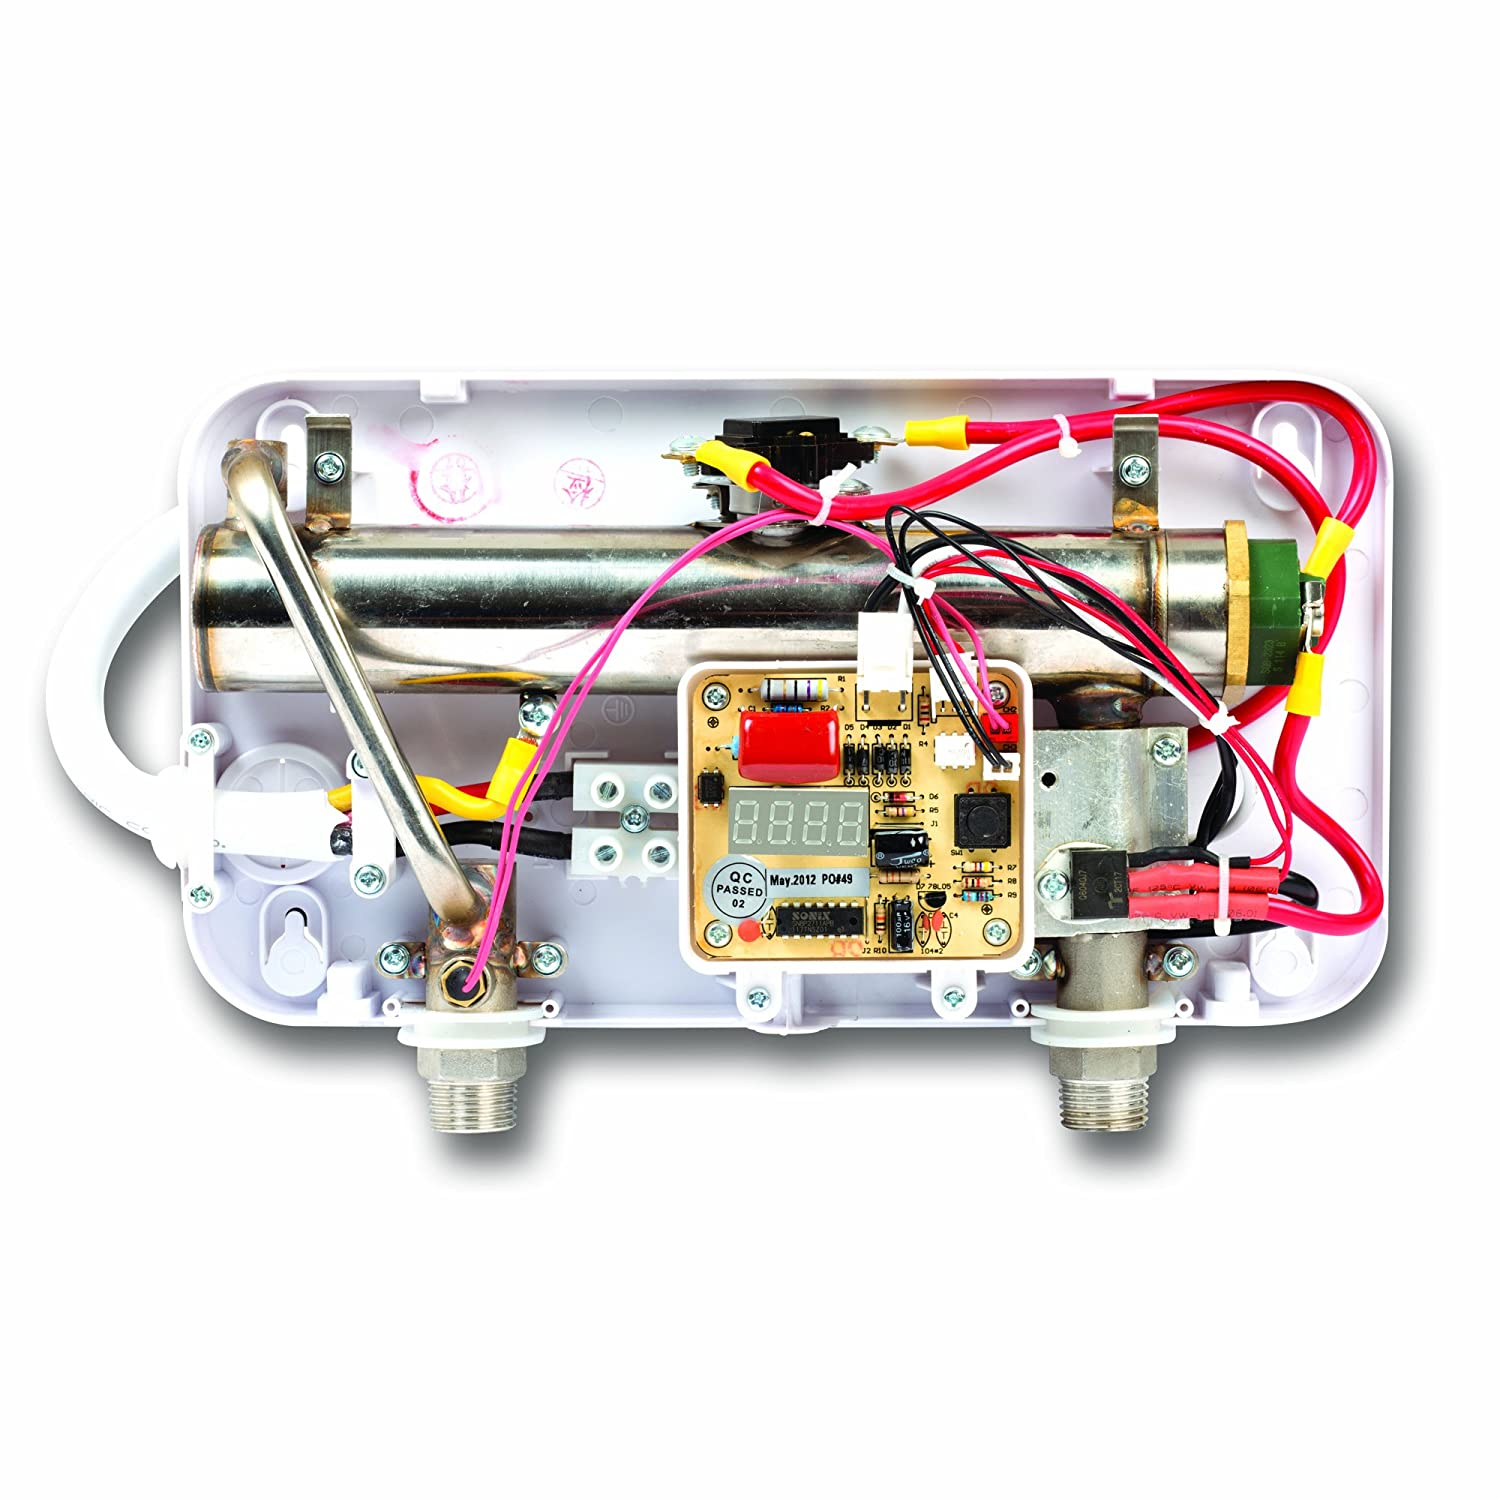 Ecosmart Pou 35 Point Of Use Electric Tankless Water Heater 35kw Sink Electrical Plans Things System 35kw120 Volt